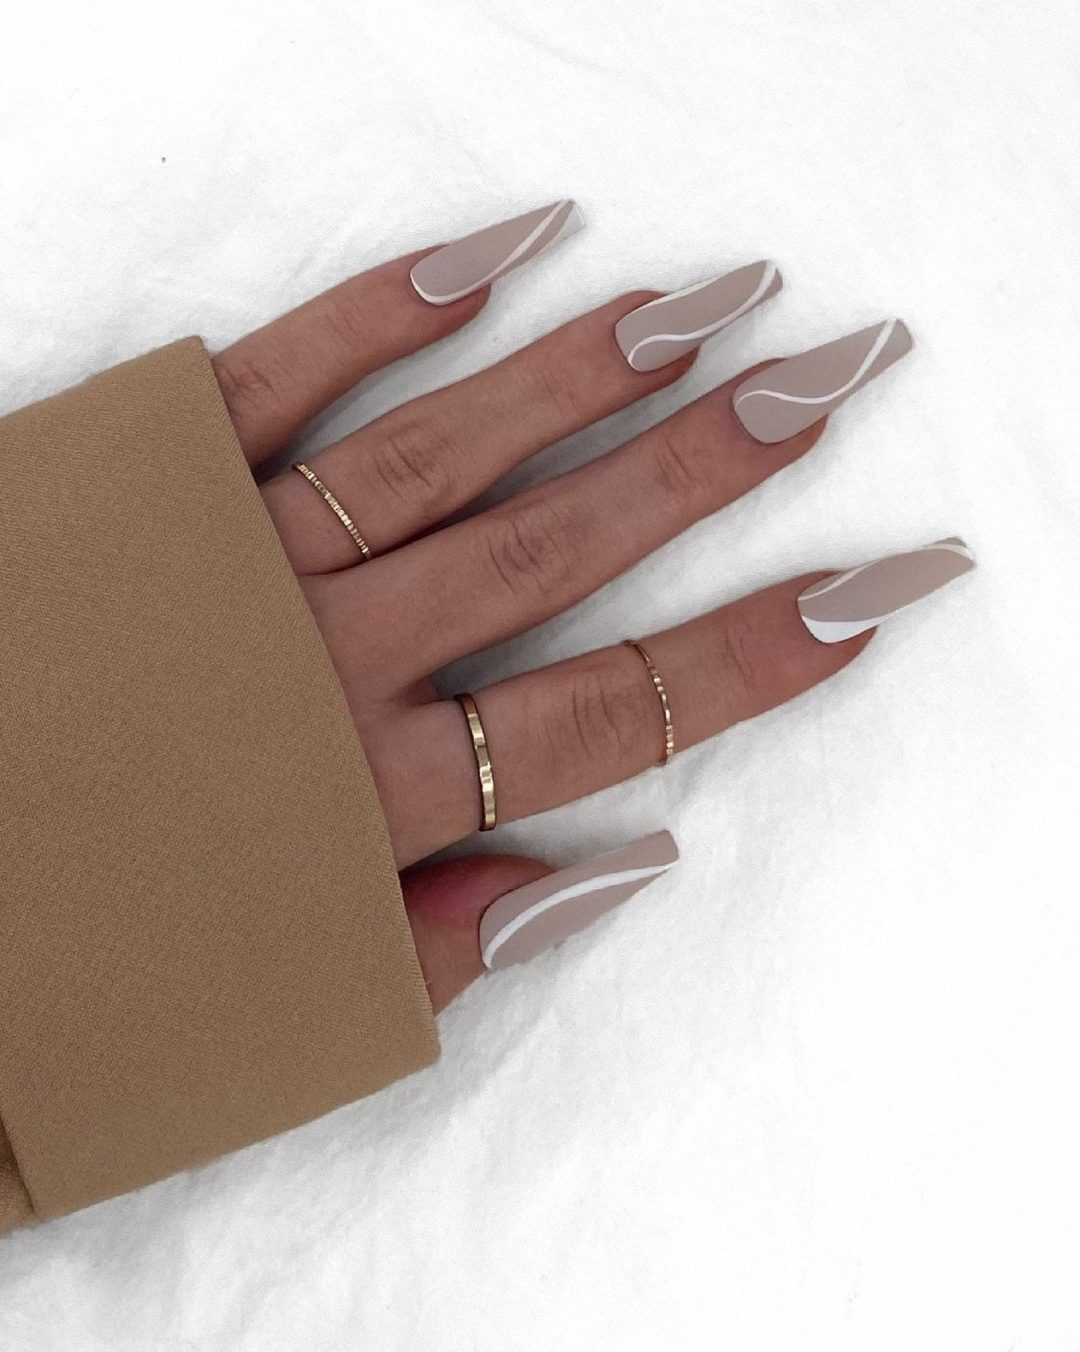 Matte nude nails with white lines